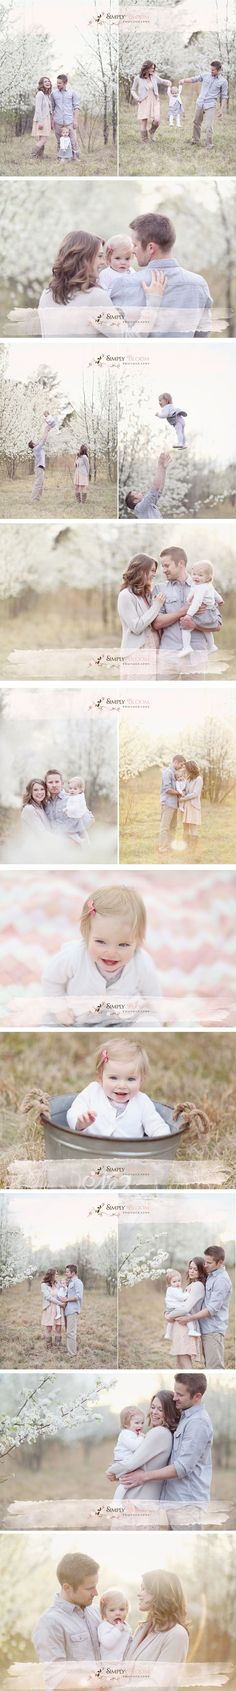 New photography winter family color schemes 53 Ideas Family Portrait Poses, Family Picture Poses, Fall Family Photos, Spring Photos, Family Photo Sessions, Family Posing, Family Pictures, Family Photo Shoots, Mini Sessions